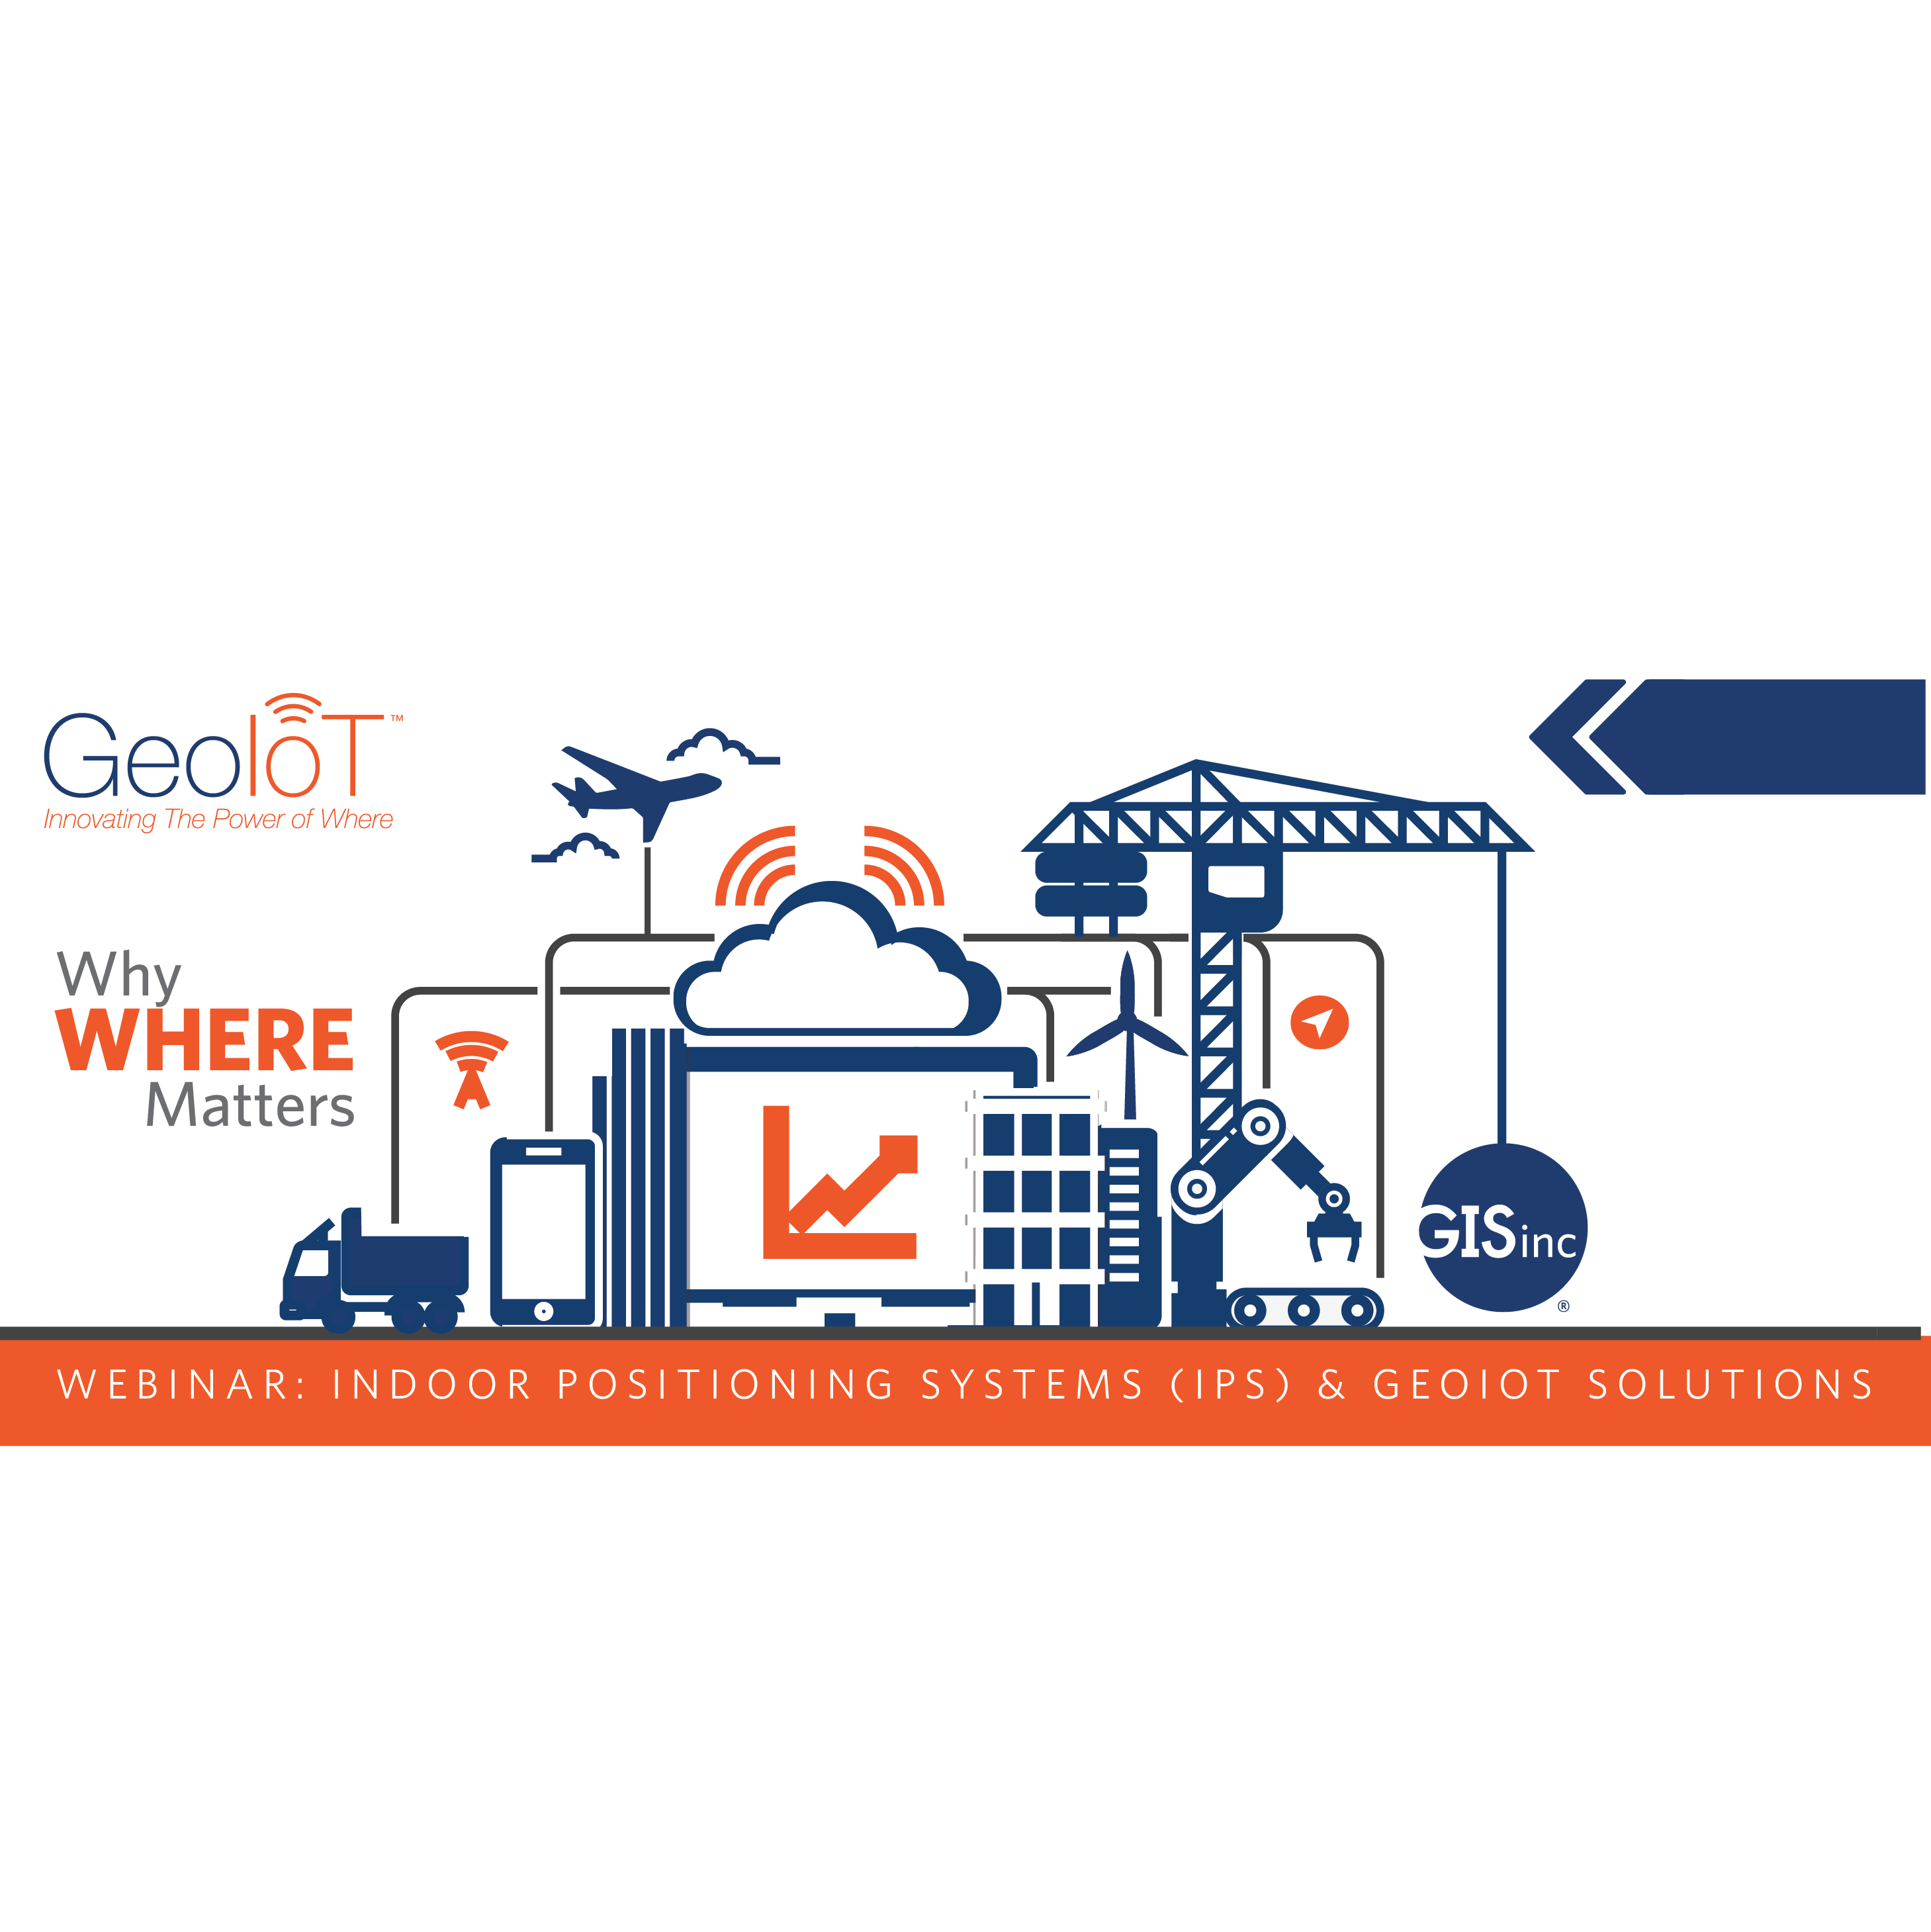 GeoIoT Webinar Episode 4 - Indoor Positioning Systems (IPS) & GeoIoT Solutions image